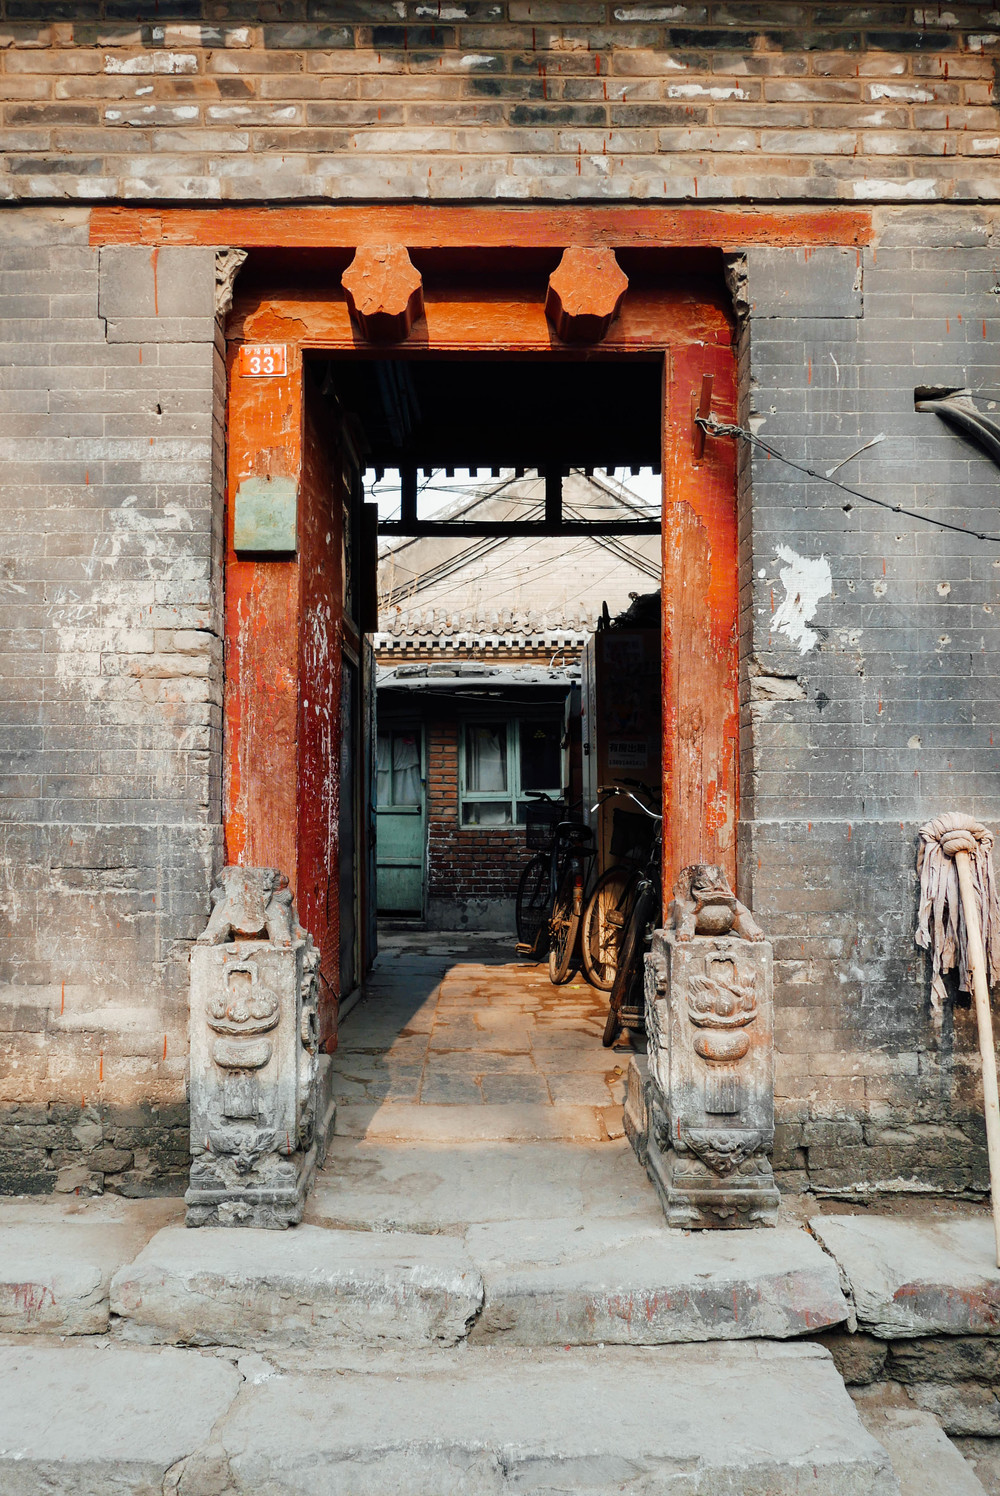 A typical courtyard entrance in the hutongs.